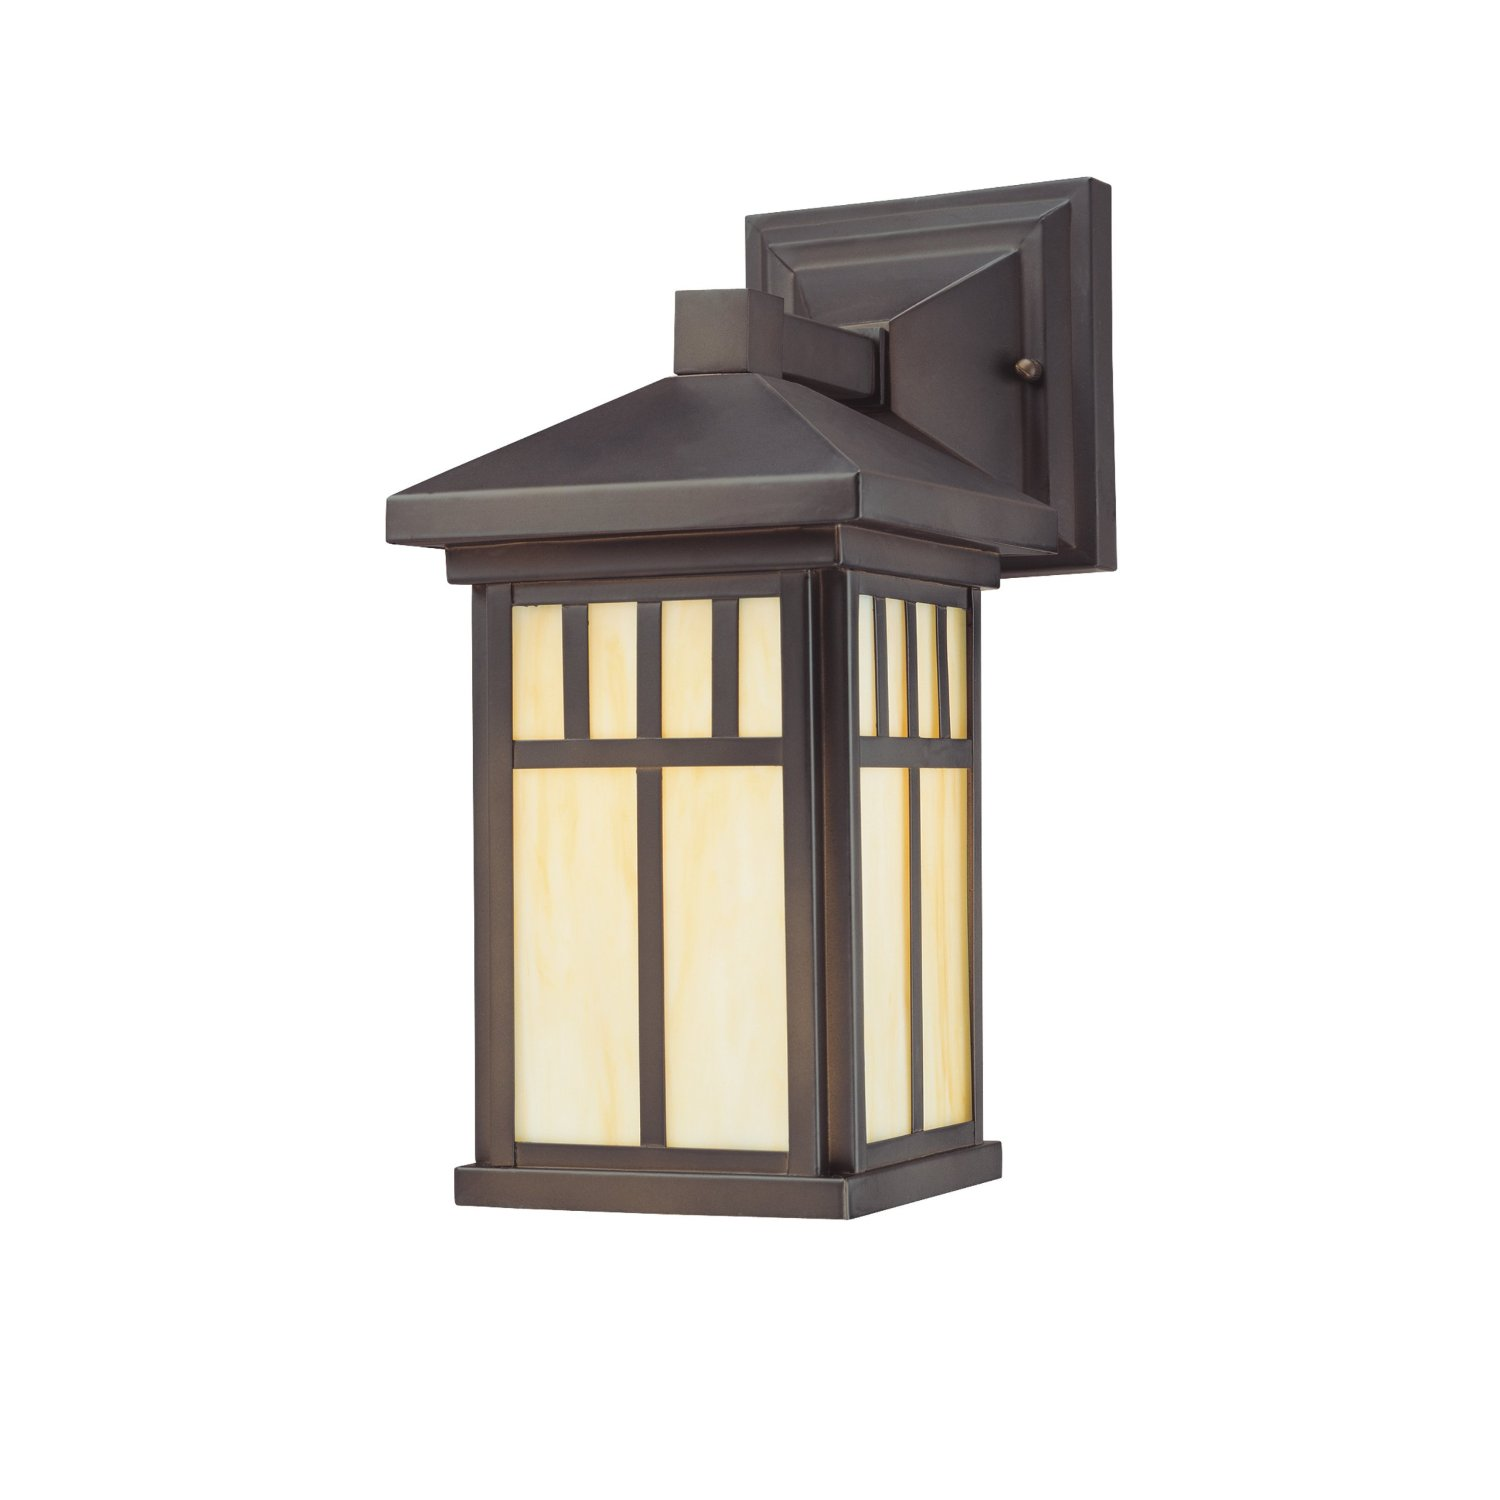 Compact ... Porch Light Fixtures Ideas ... porch light fixtures